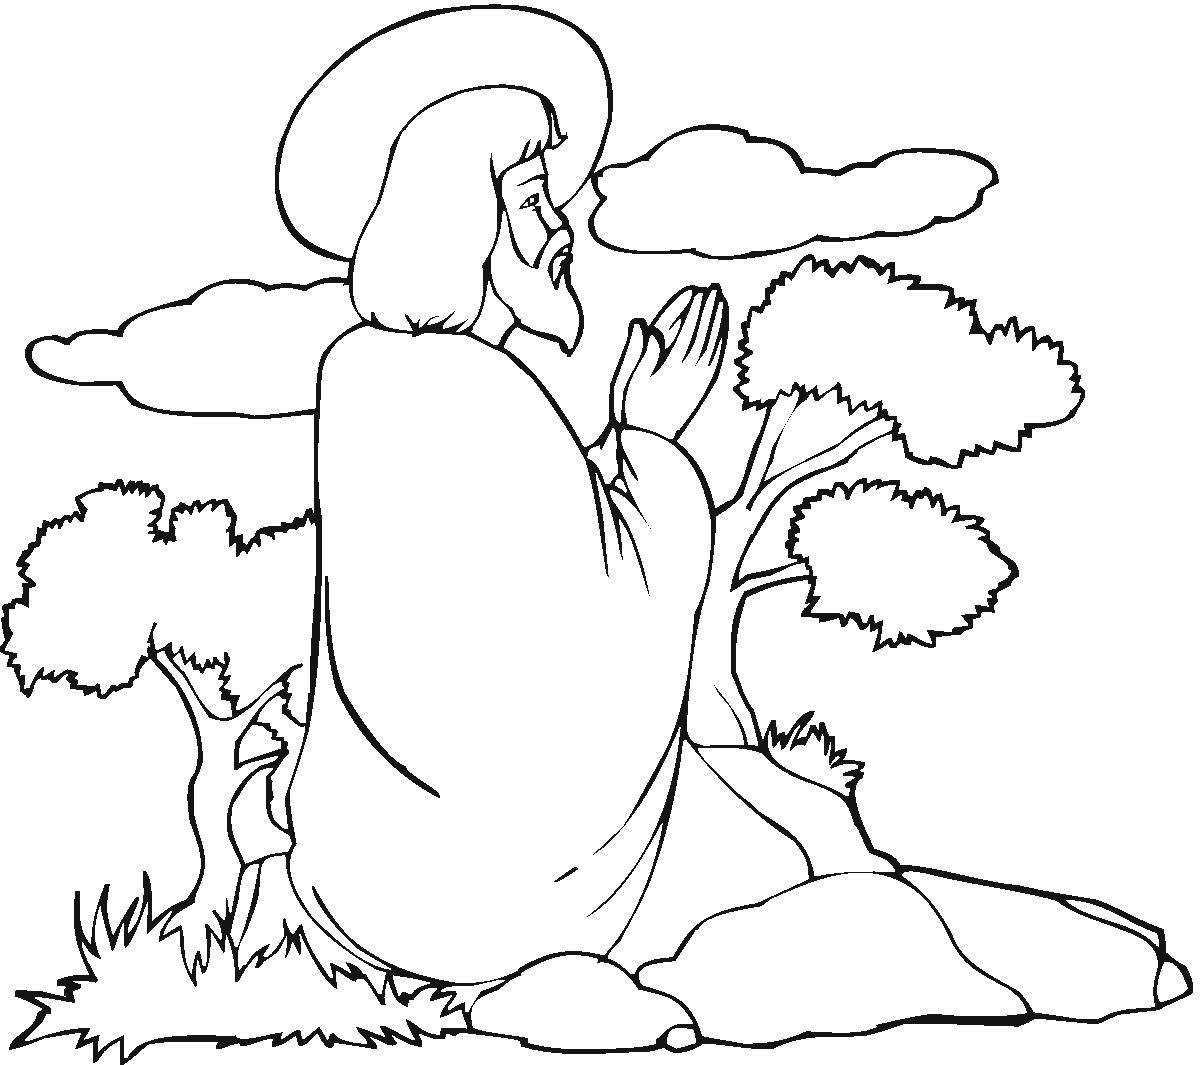 coloring pages for jesus - Easy Colouring Pages